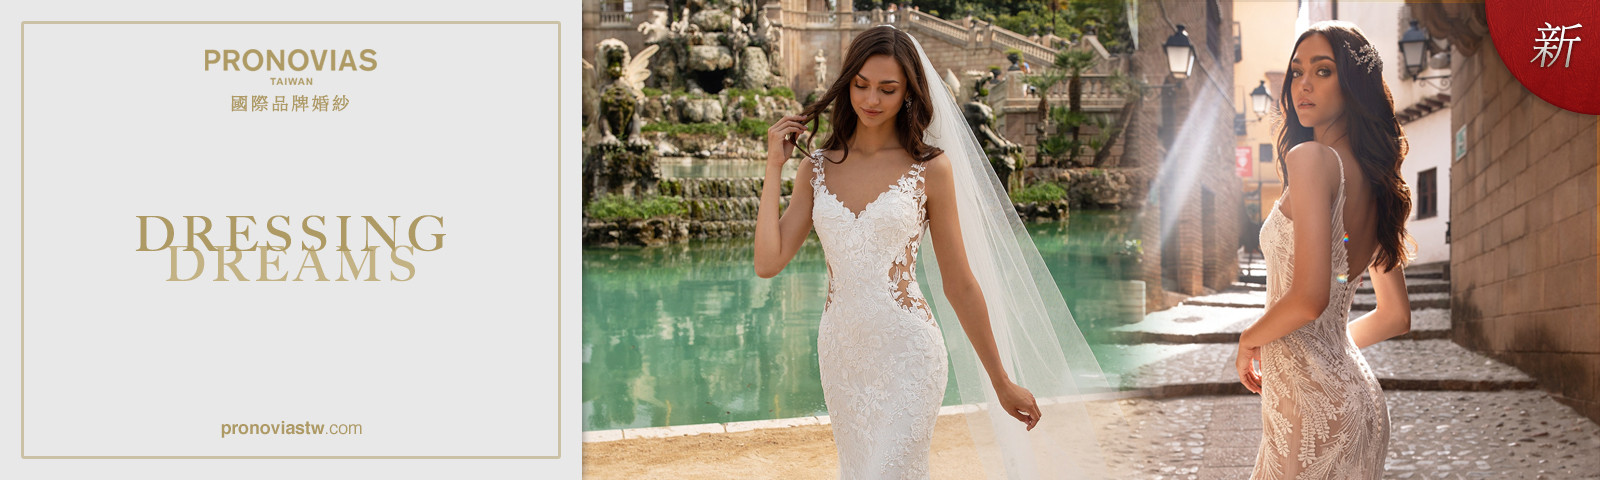 WELCOME TO PRONOVIAS